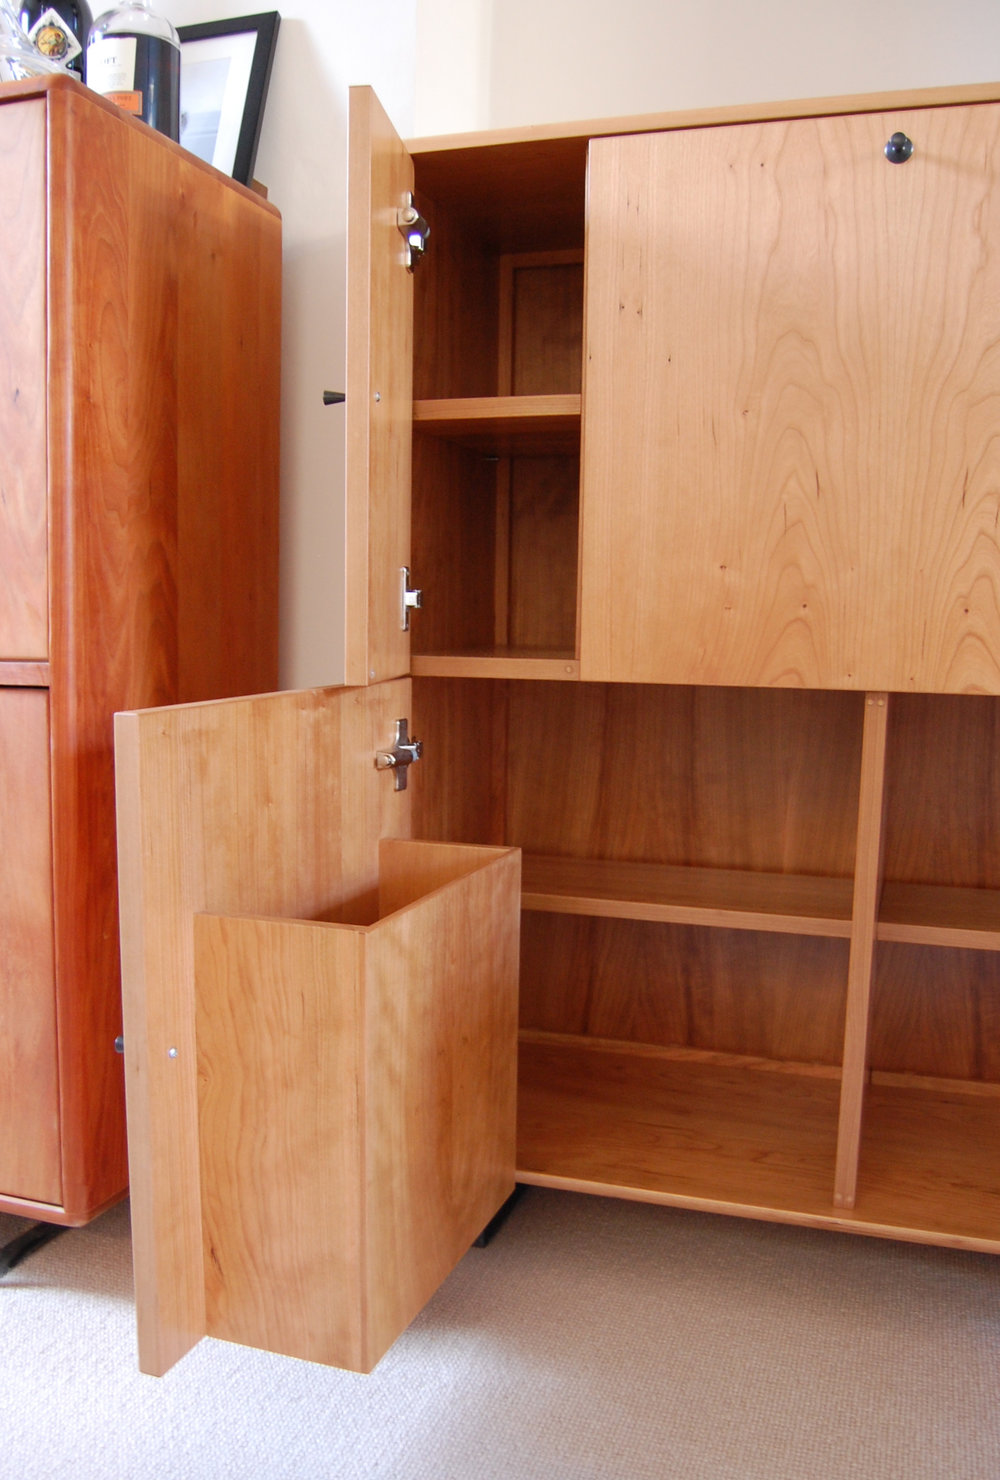 Grain_Bespoke_Furniture_Cherry_Drinks_Cabinet_5.jpg